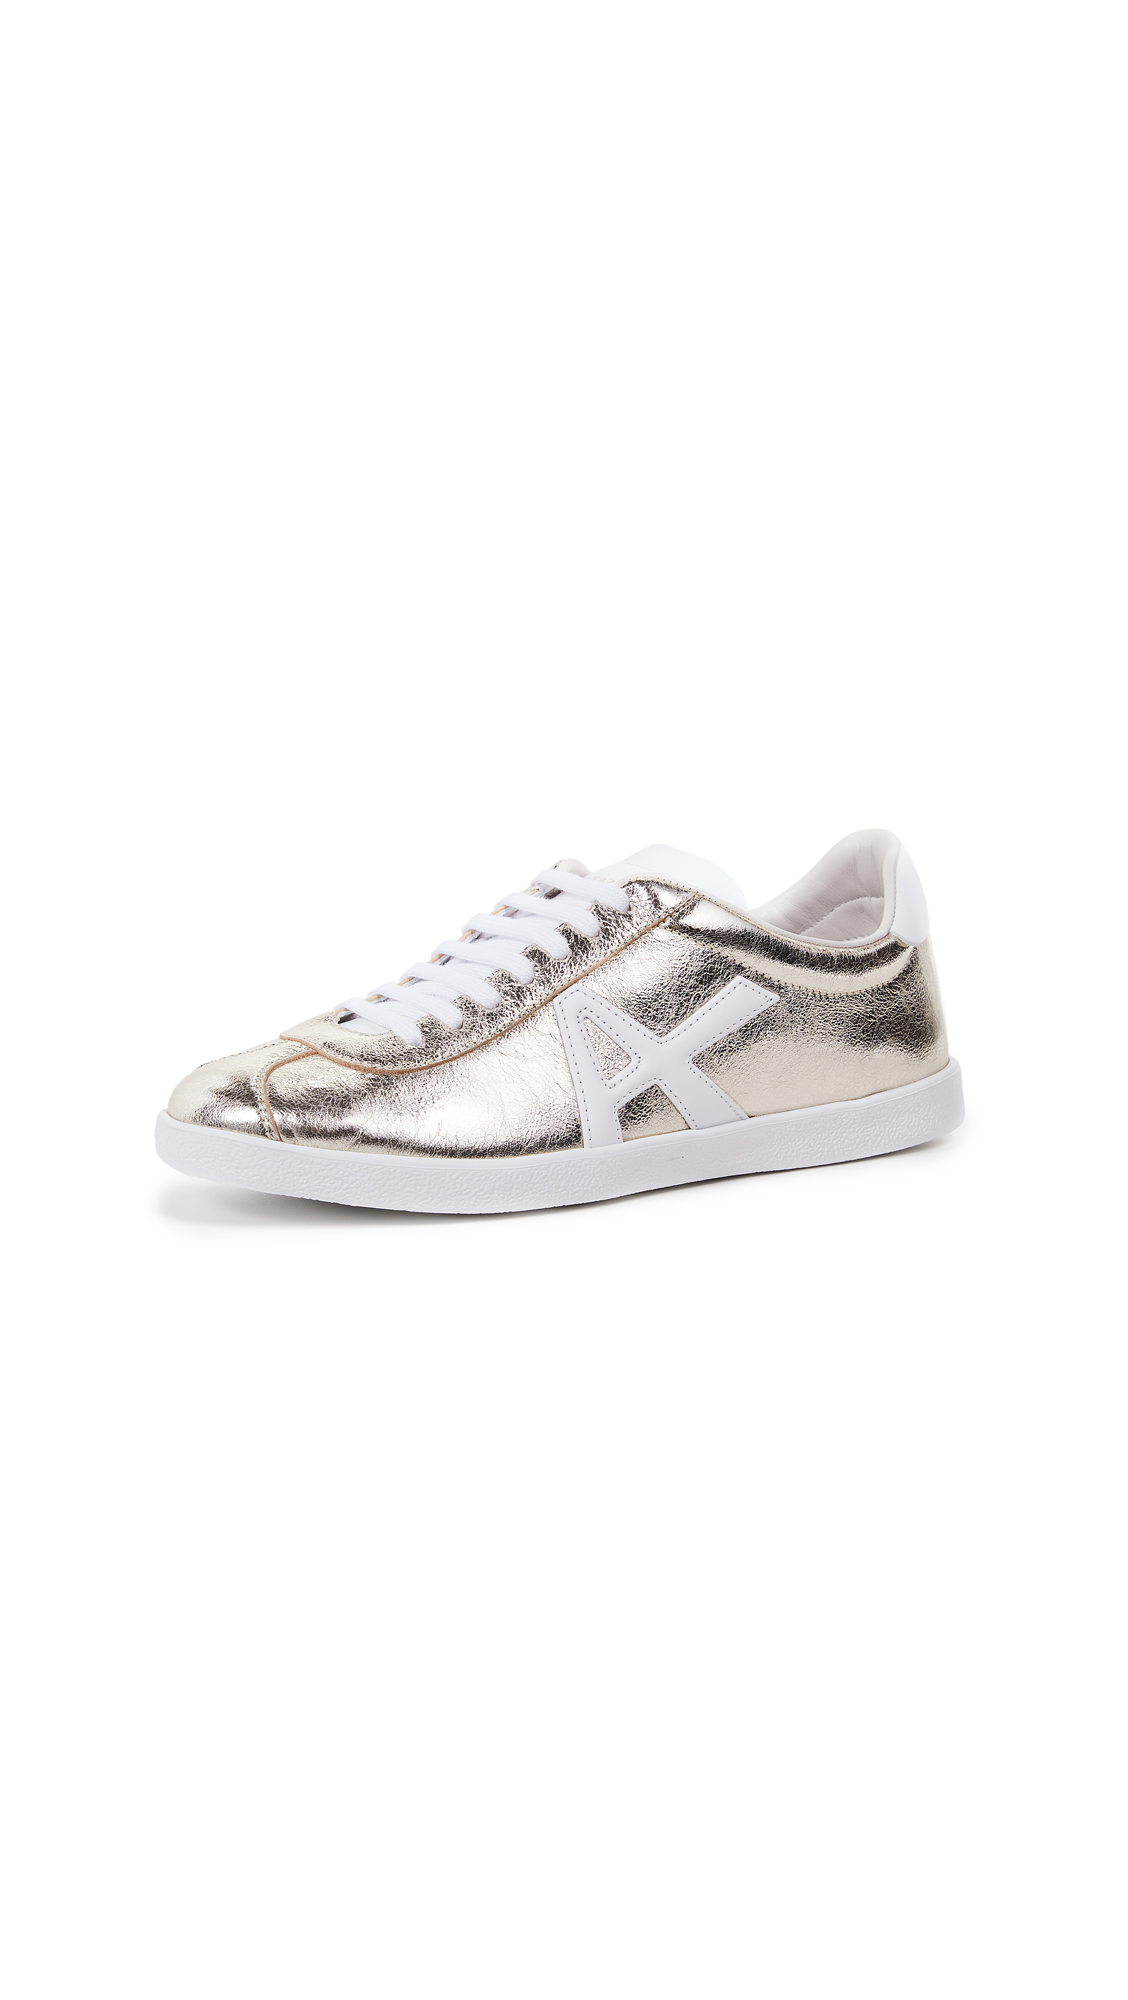 Aquazzura The A Sneakers - Platino/White